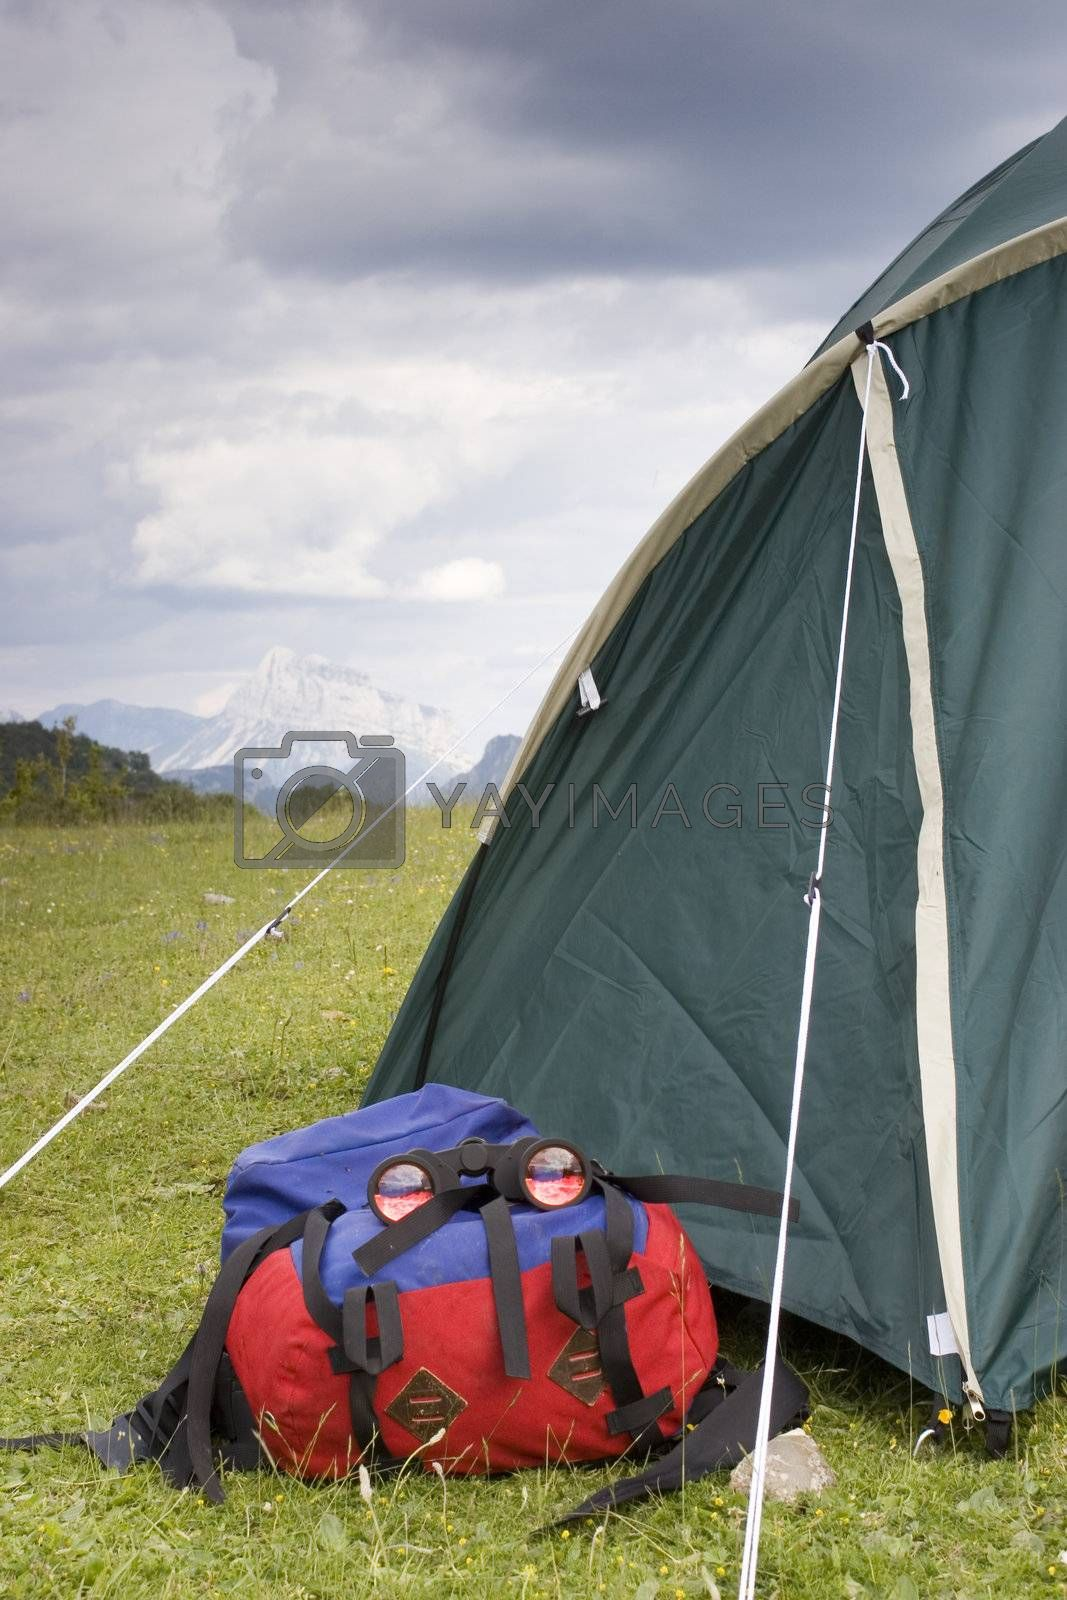 Tent, backpack and binoculars in front of a mountains scenery